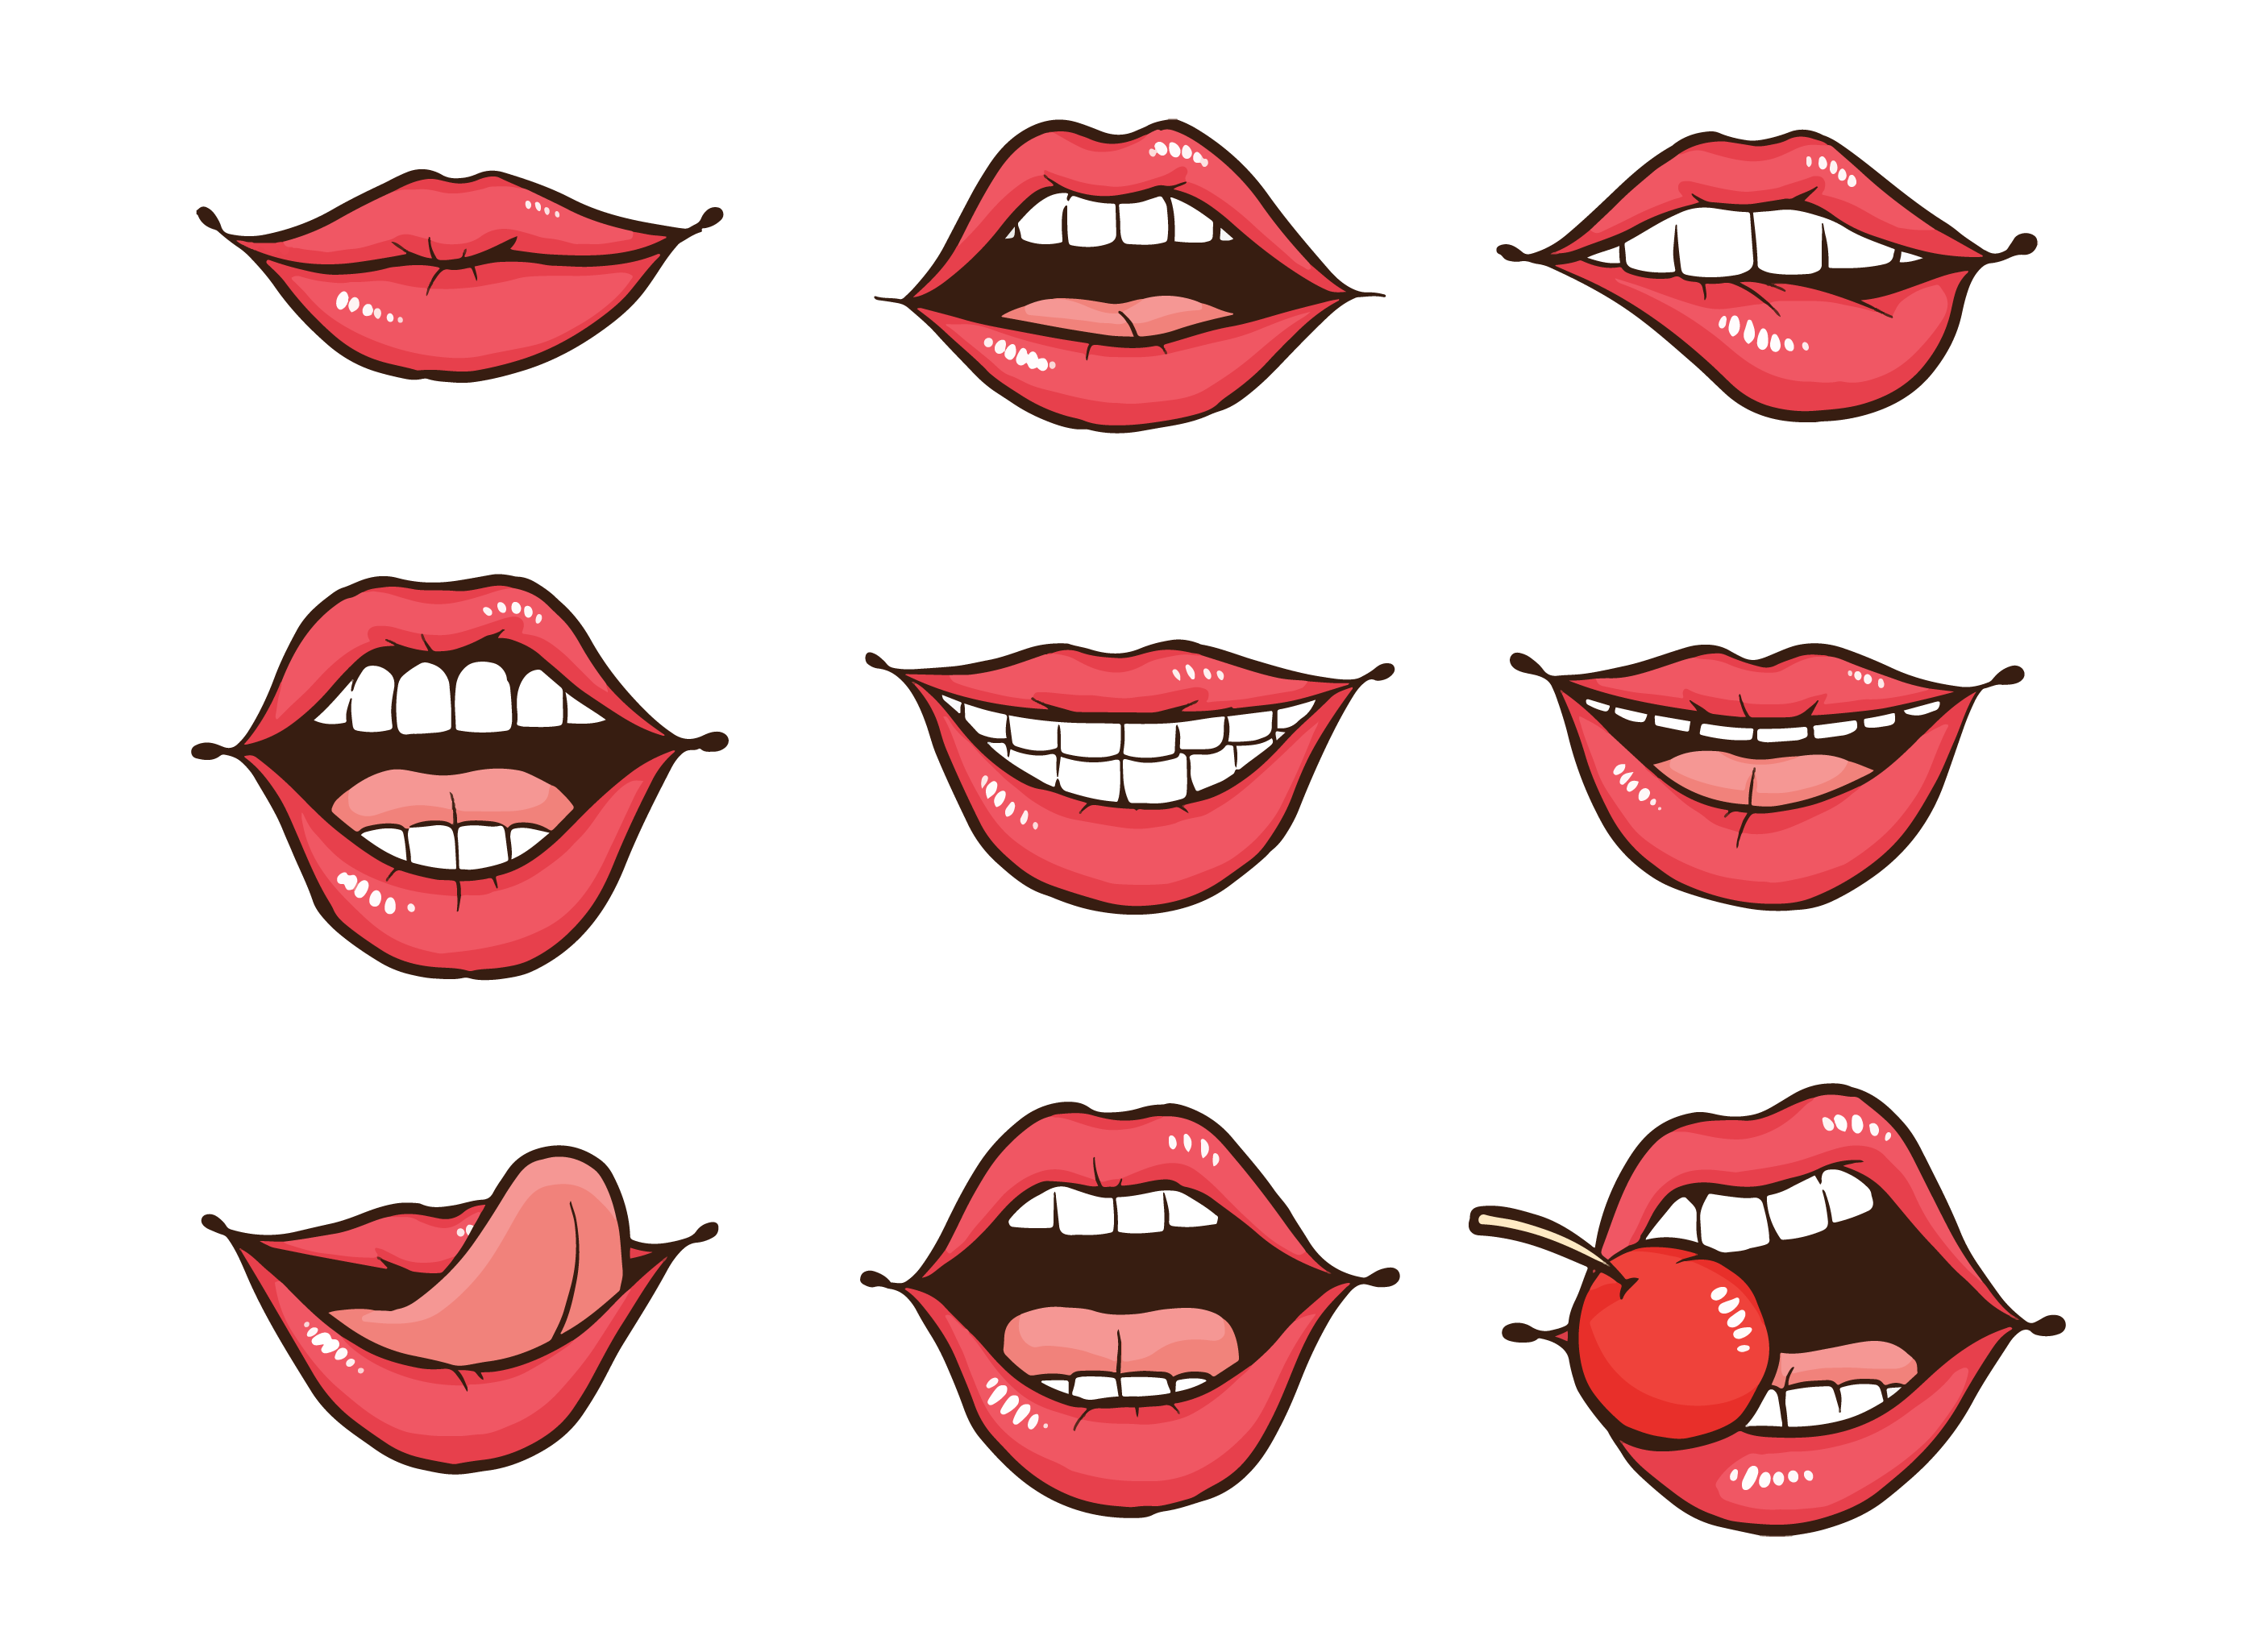 File Wide Mouth Open Smile furthermore Motor Mouth 20020552 moreover  likewise An Exhausted Toilet Seat additionally A Cartoon Of A Cute Young Girl With Her Mouth Wide Open Gm692118710 127706917. on cartoon mouth talking